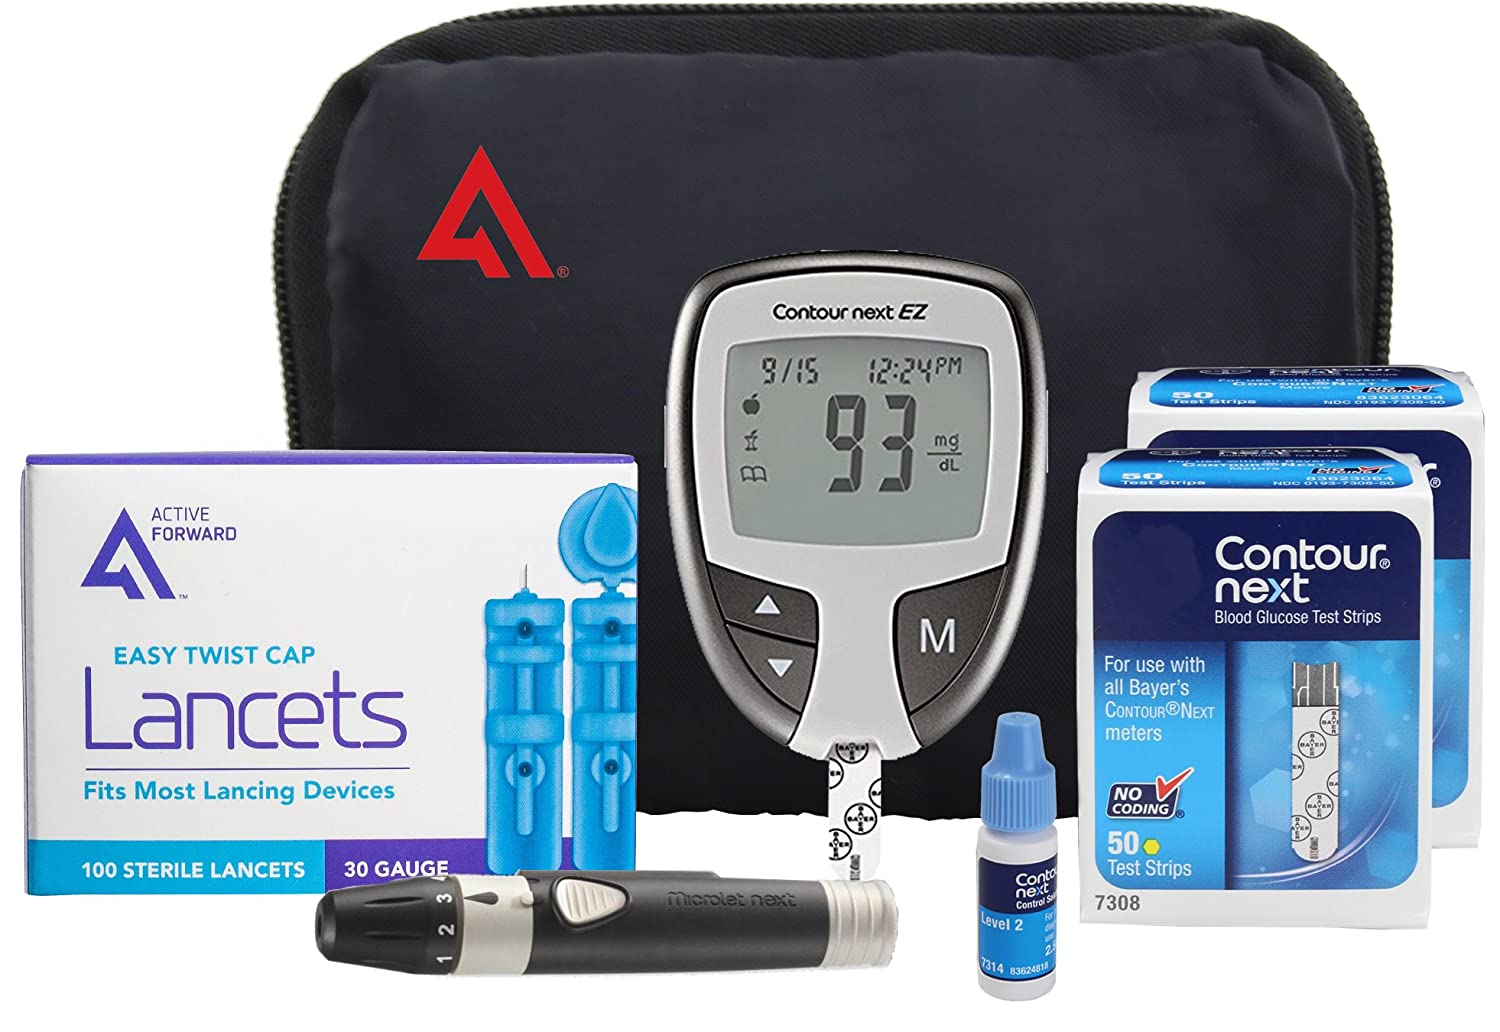 Contour NEXT EZ Diabetes Testing Kit | Contour NEXT EZ Blood Glucose Meter,